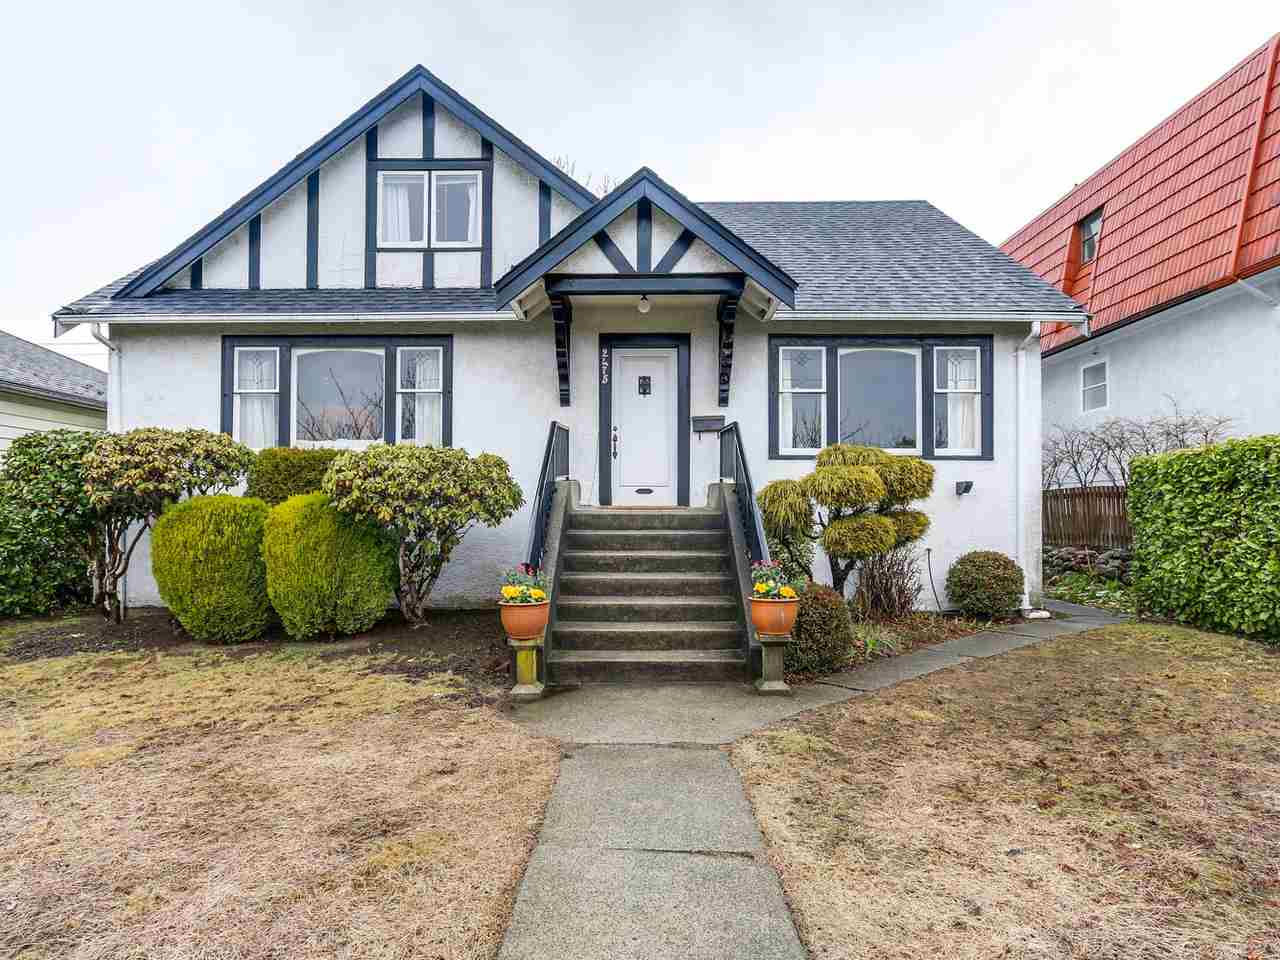 Photo 1: 2475 W 16TH Avenue in Vancouver: Kitsilano House for sale (Vancouver West)  : MLS® # R2143783